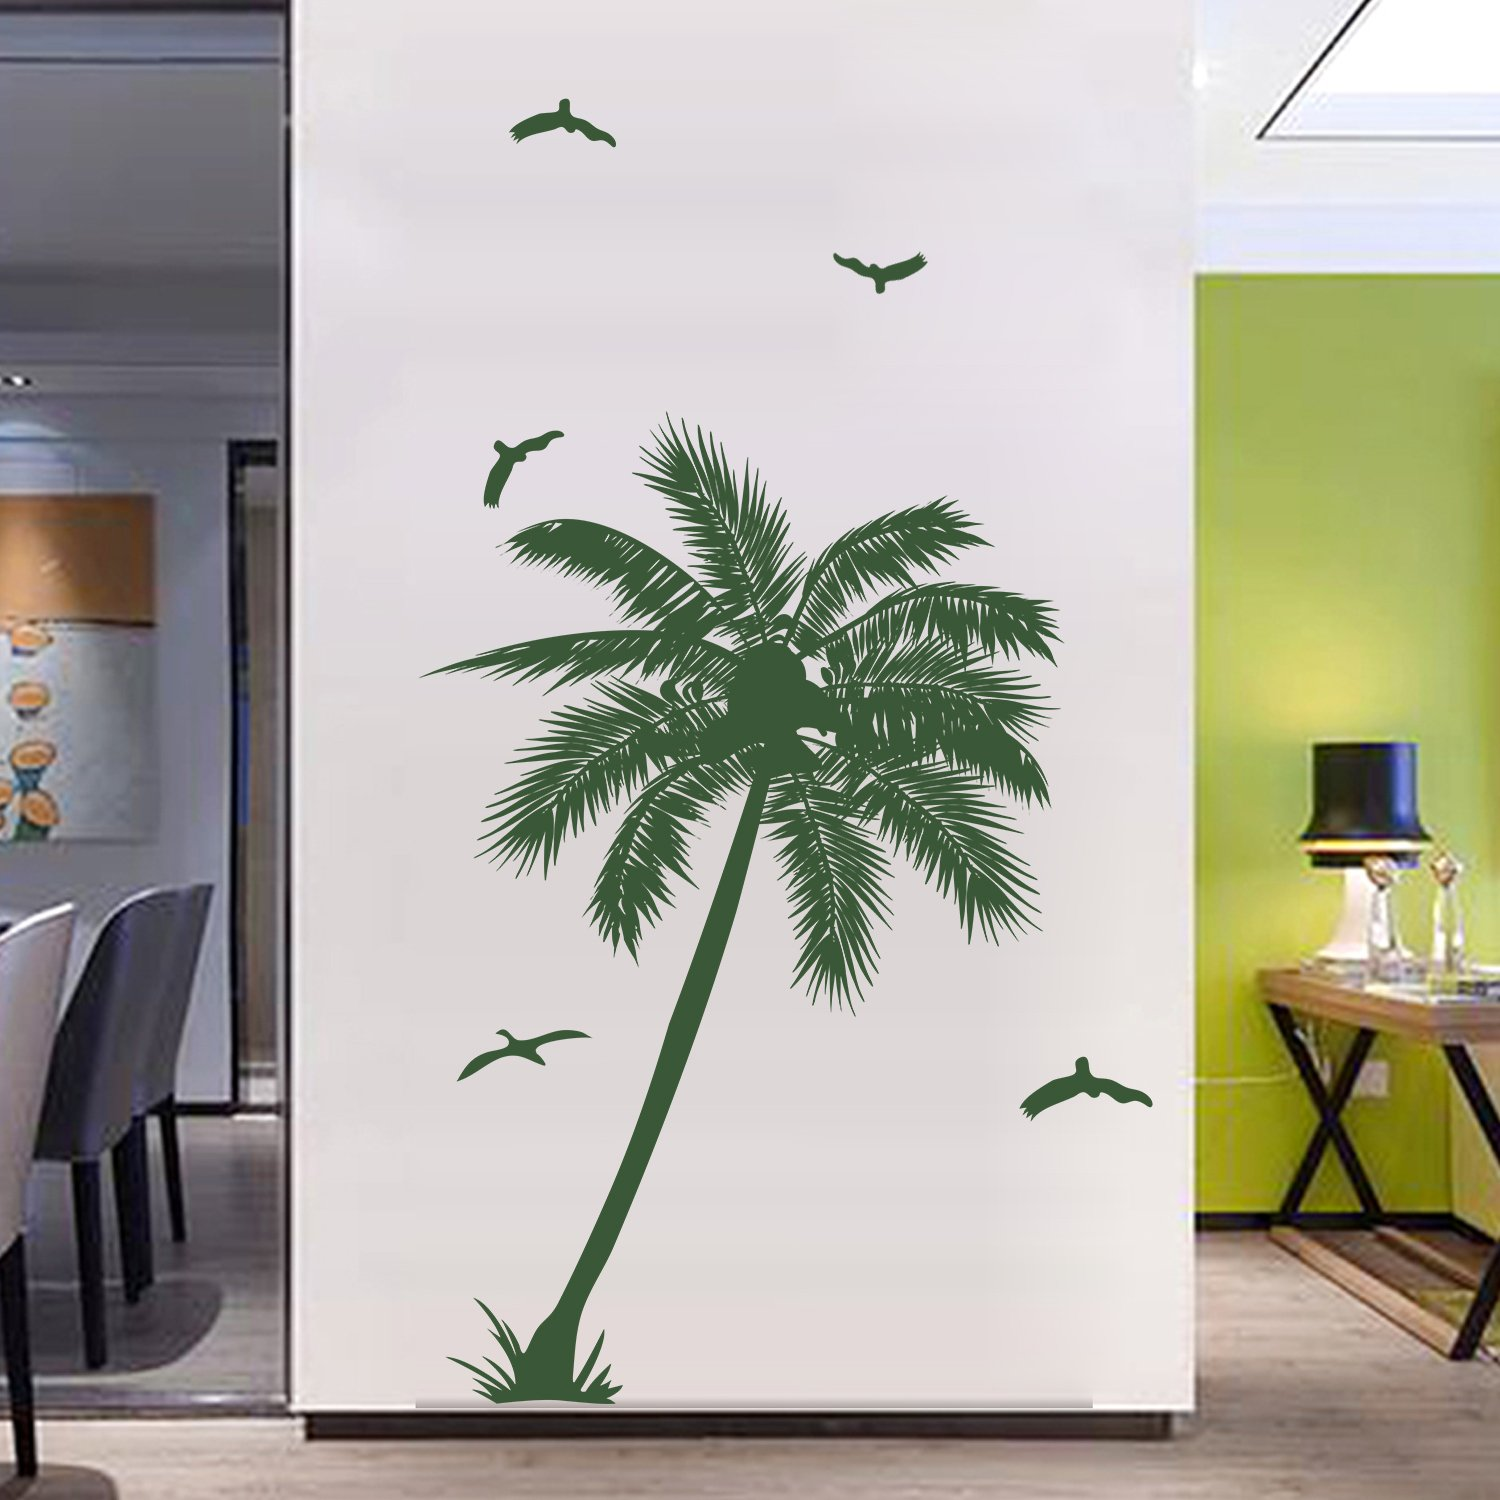 DecalMile Large Palm Tree Wall Decals Vinyl Removable Wall Stickers Bedroom  Living Room Office Wall Decor